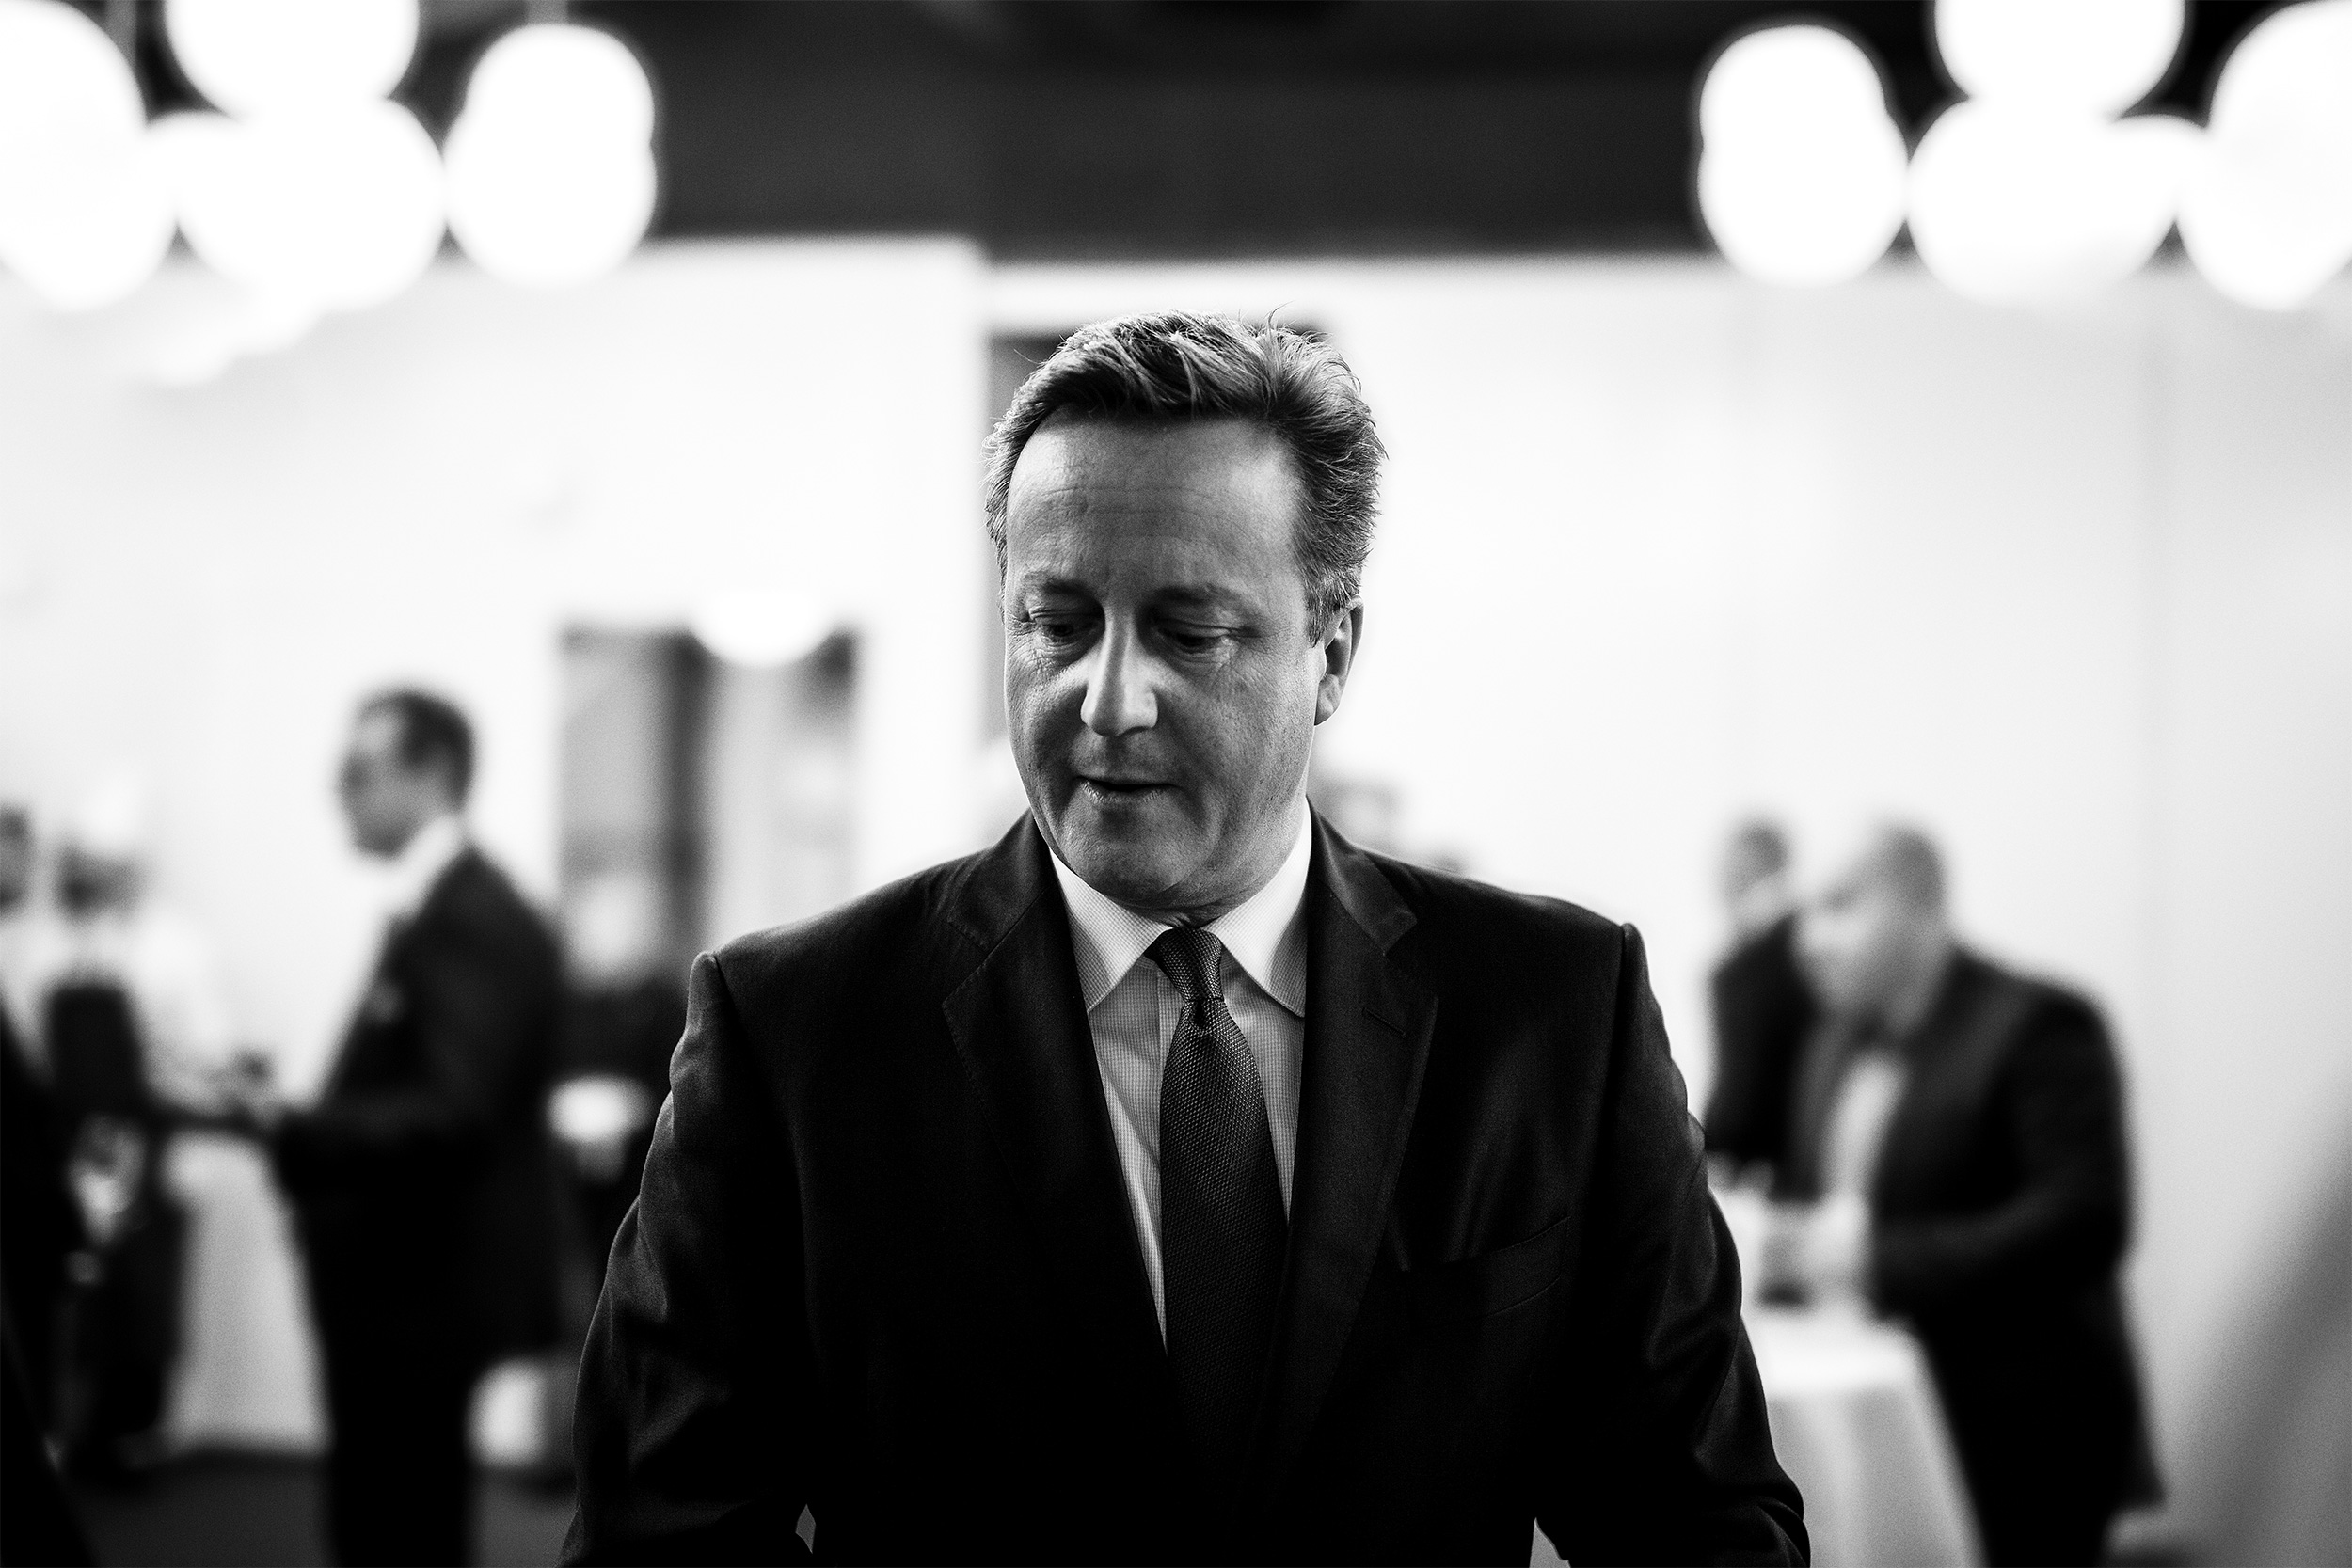 David Cameron Thoughtful Moment